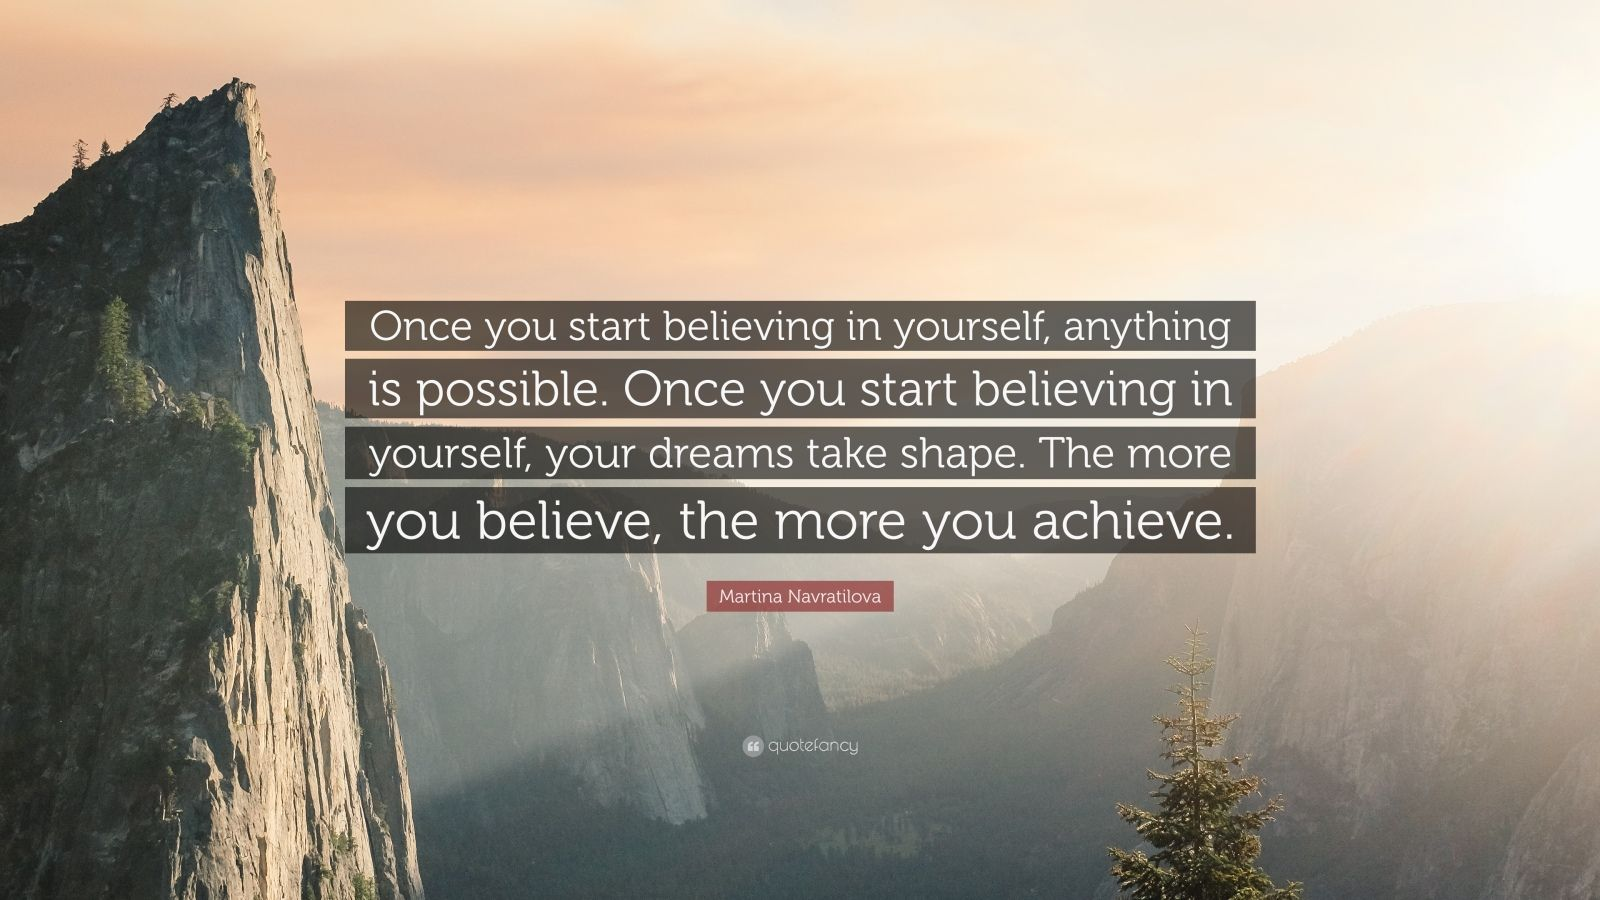 """Martina Navratilova Quote: """"Once you start believing in yourself, anything is possible. Once you start believing in yourself, your dreams take shape. The more you believe, the more you achieve."""""""